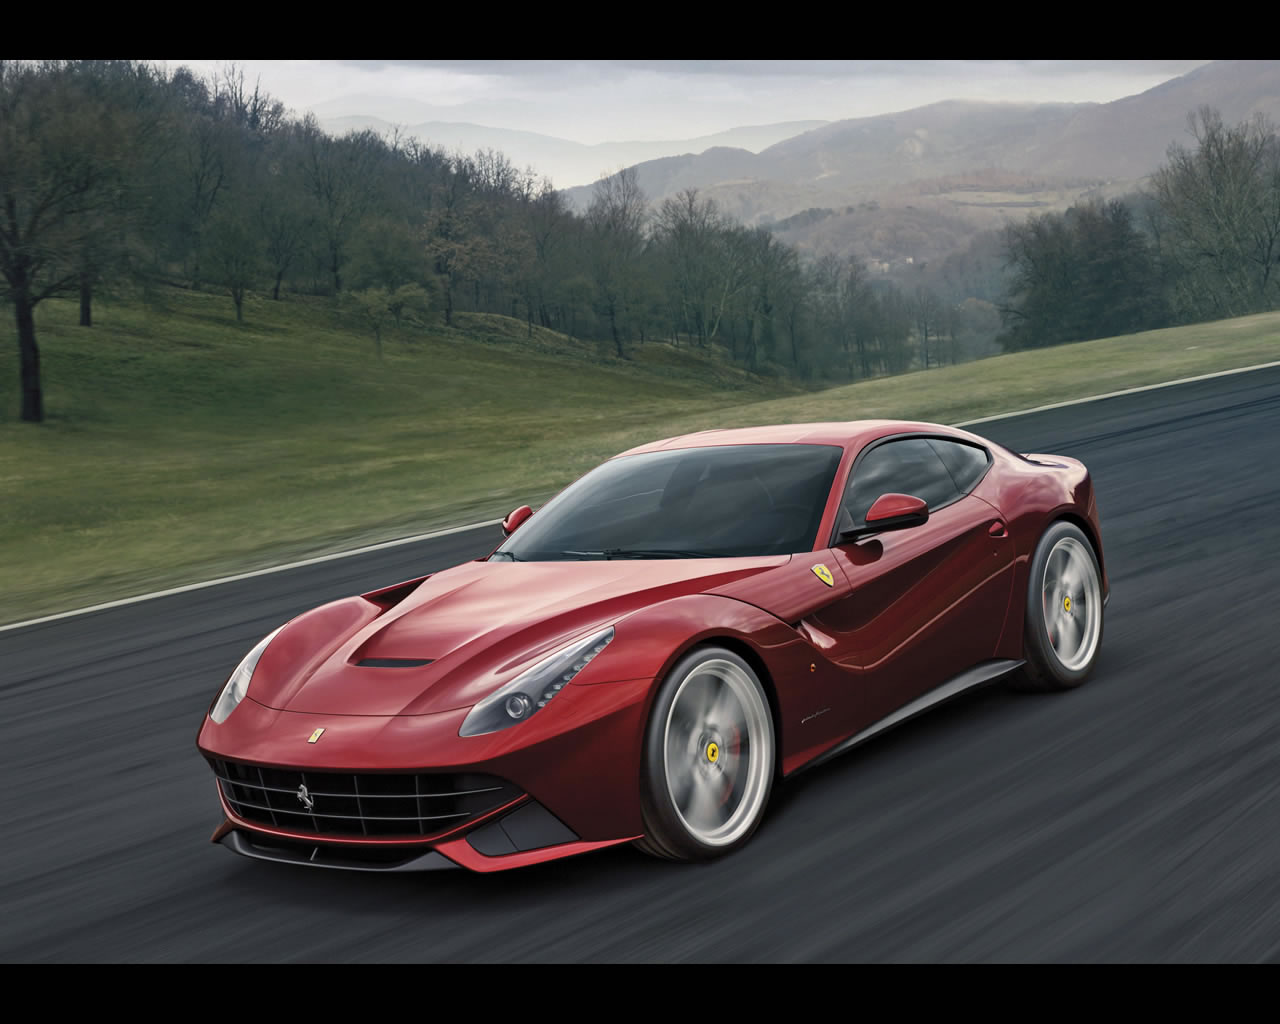 Ferrari F12 Berlinetta 2012 - Pininfarina : Specifications